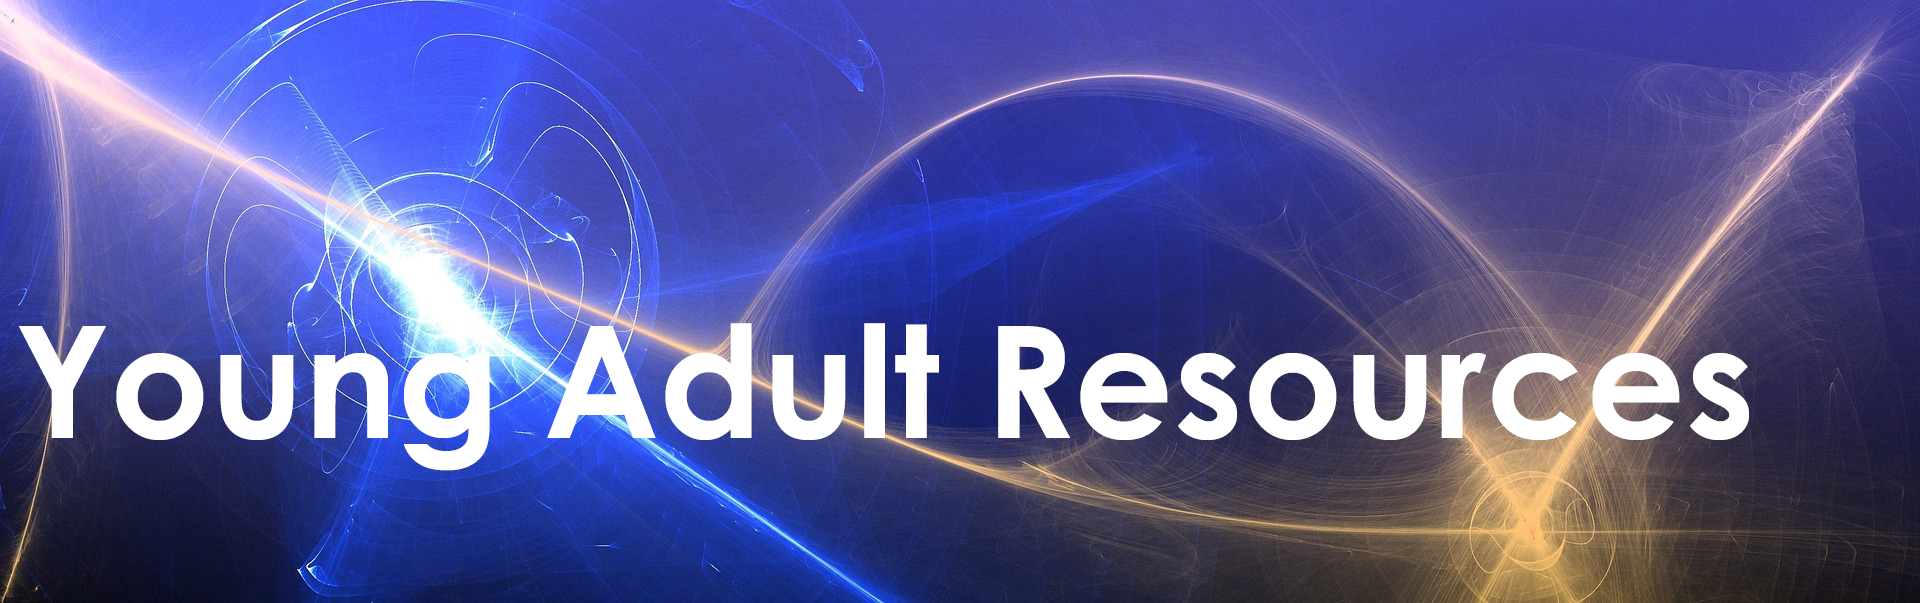 Young Adult Resources title banner